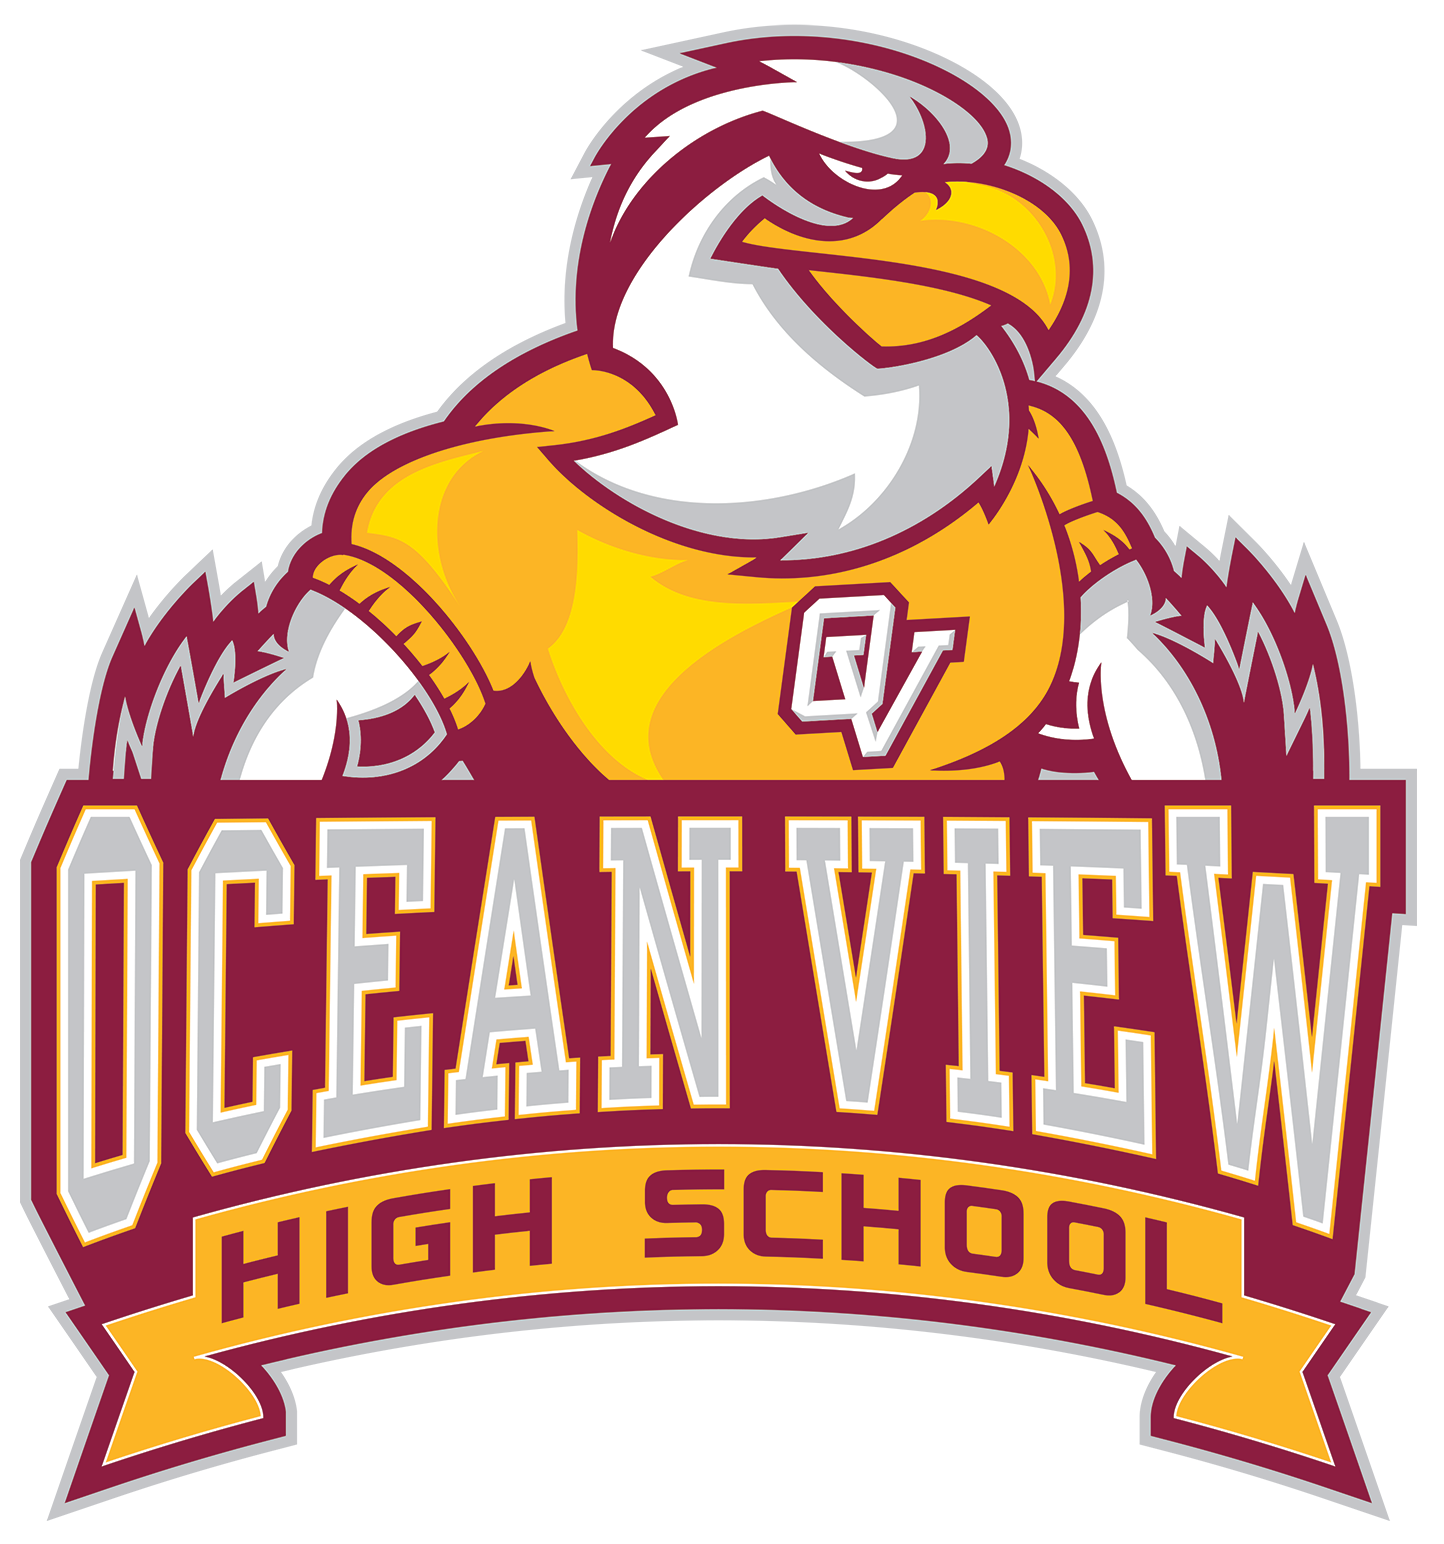 Ocean View High School